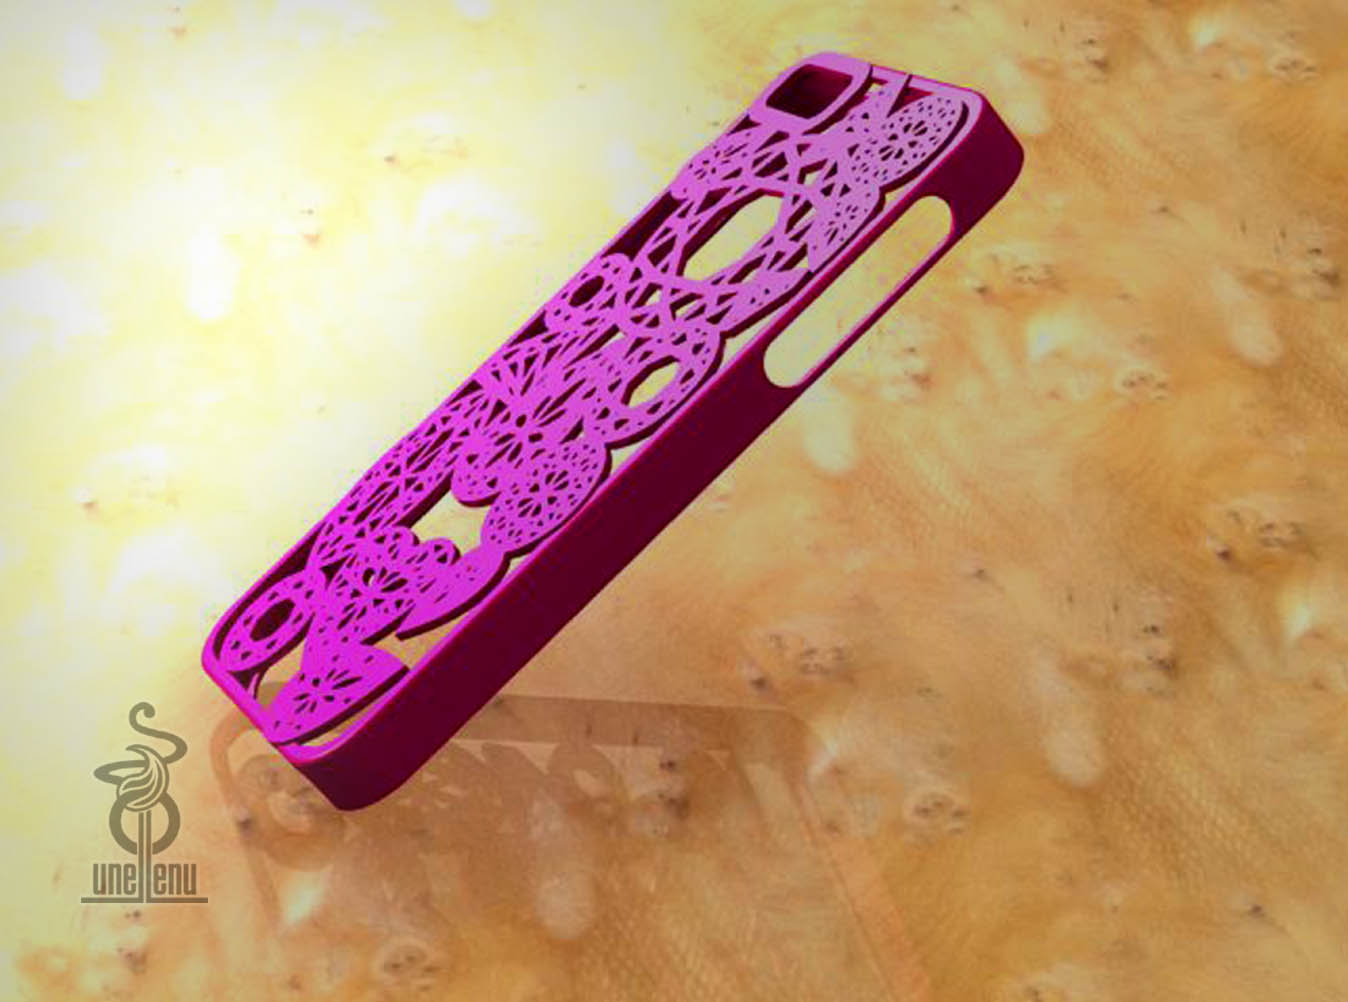 Pear Shaped Iphone Case